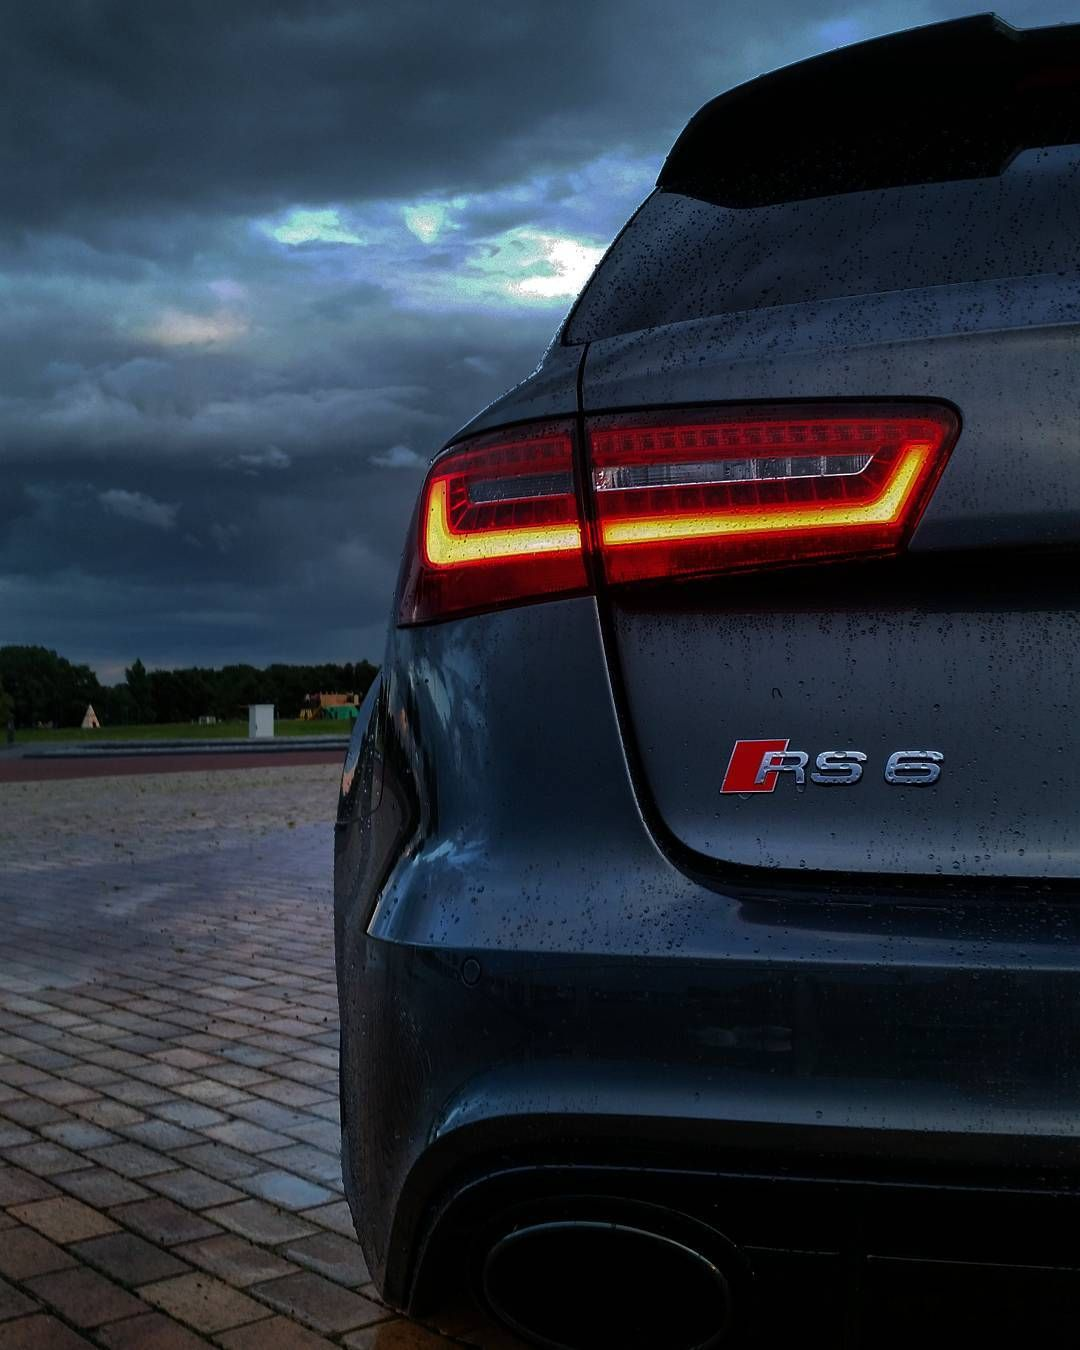 RS6 iPhone Background Smartphone Car Wallpapers